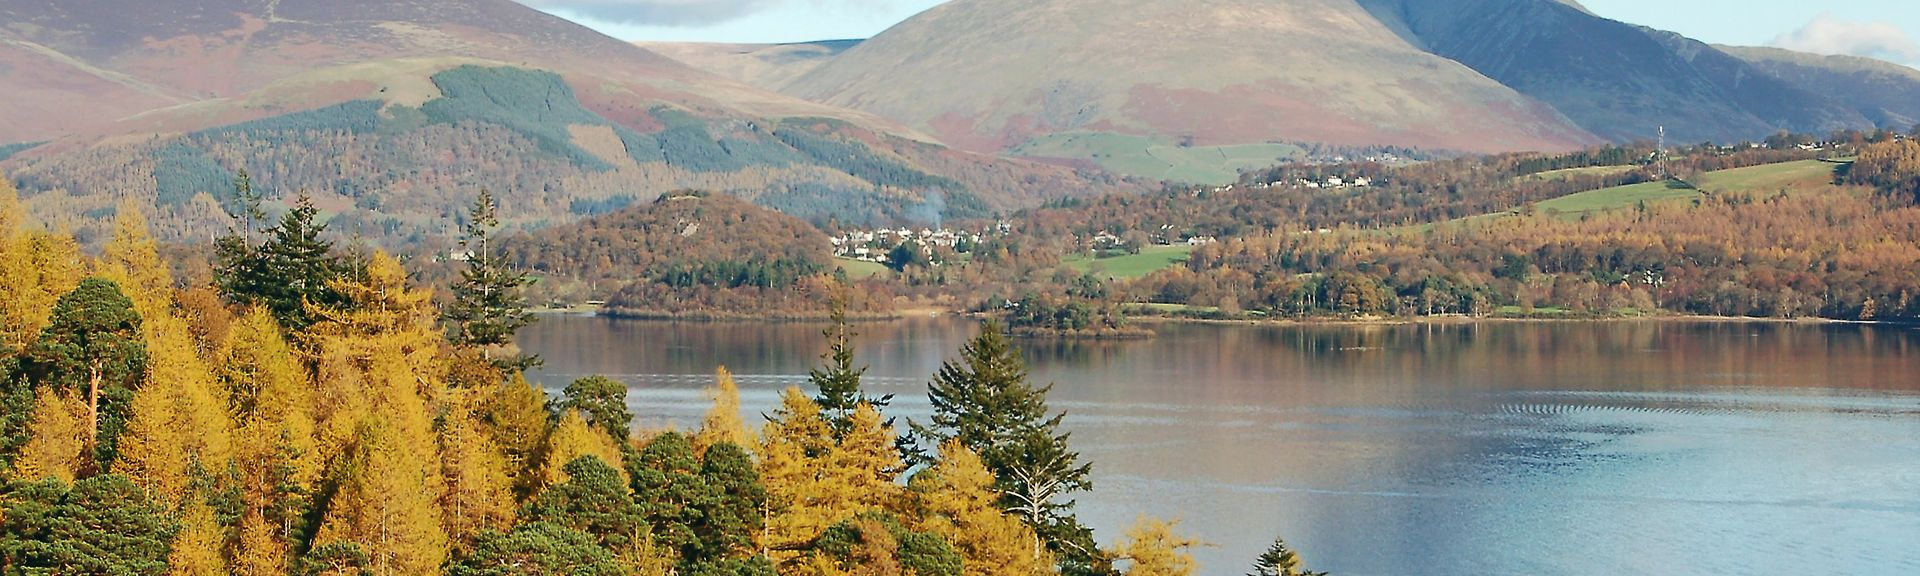 Thirlmere, Keswick, Cumbria, UK